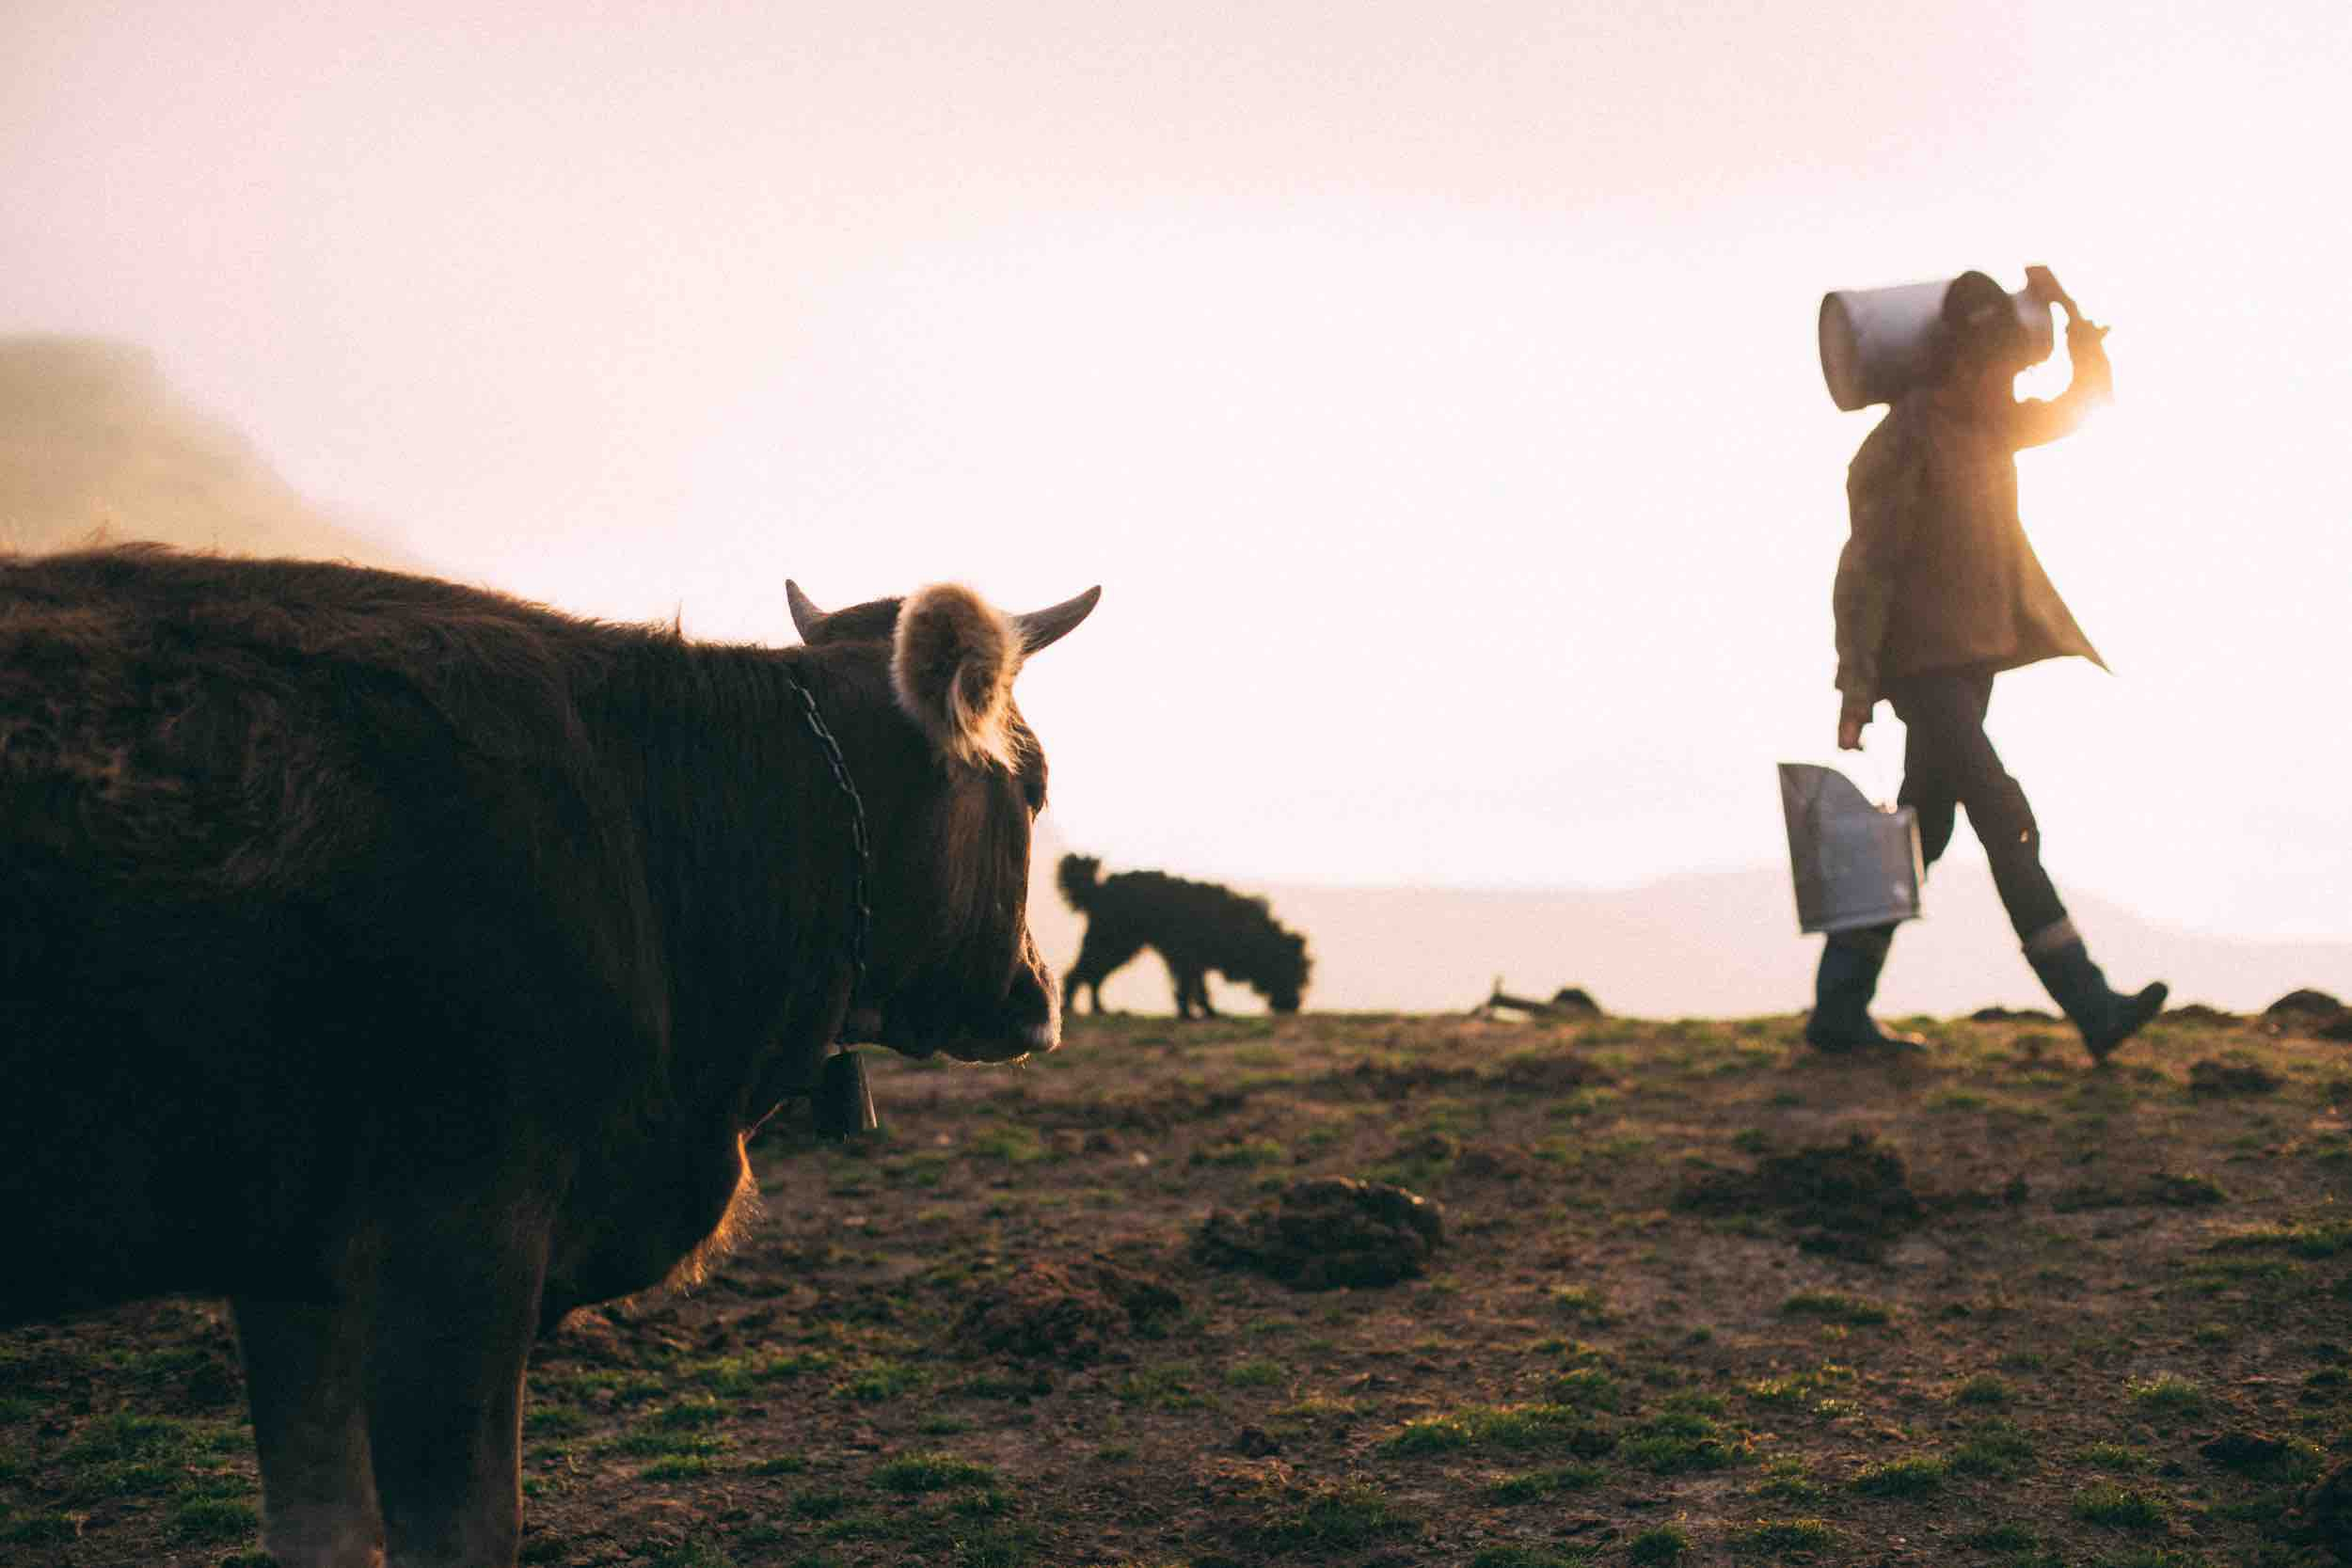 Cow, watching a farmer walk off with a milk container. Photo by Mihail Macri on Unsplash